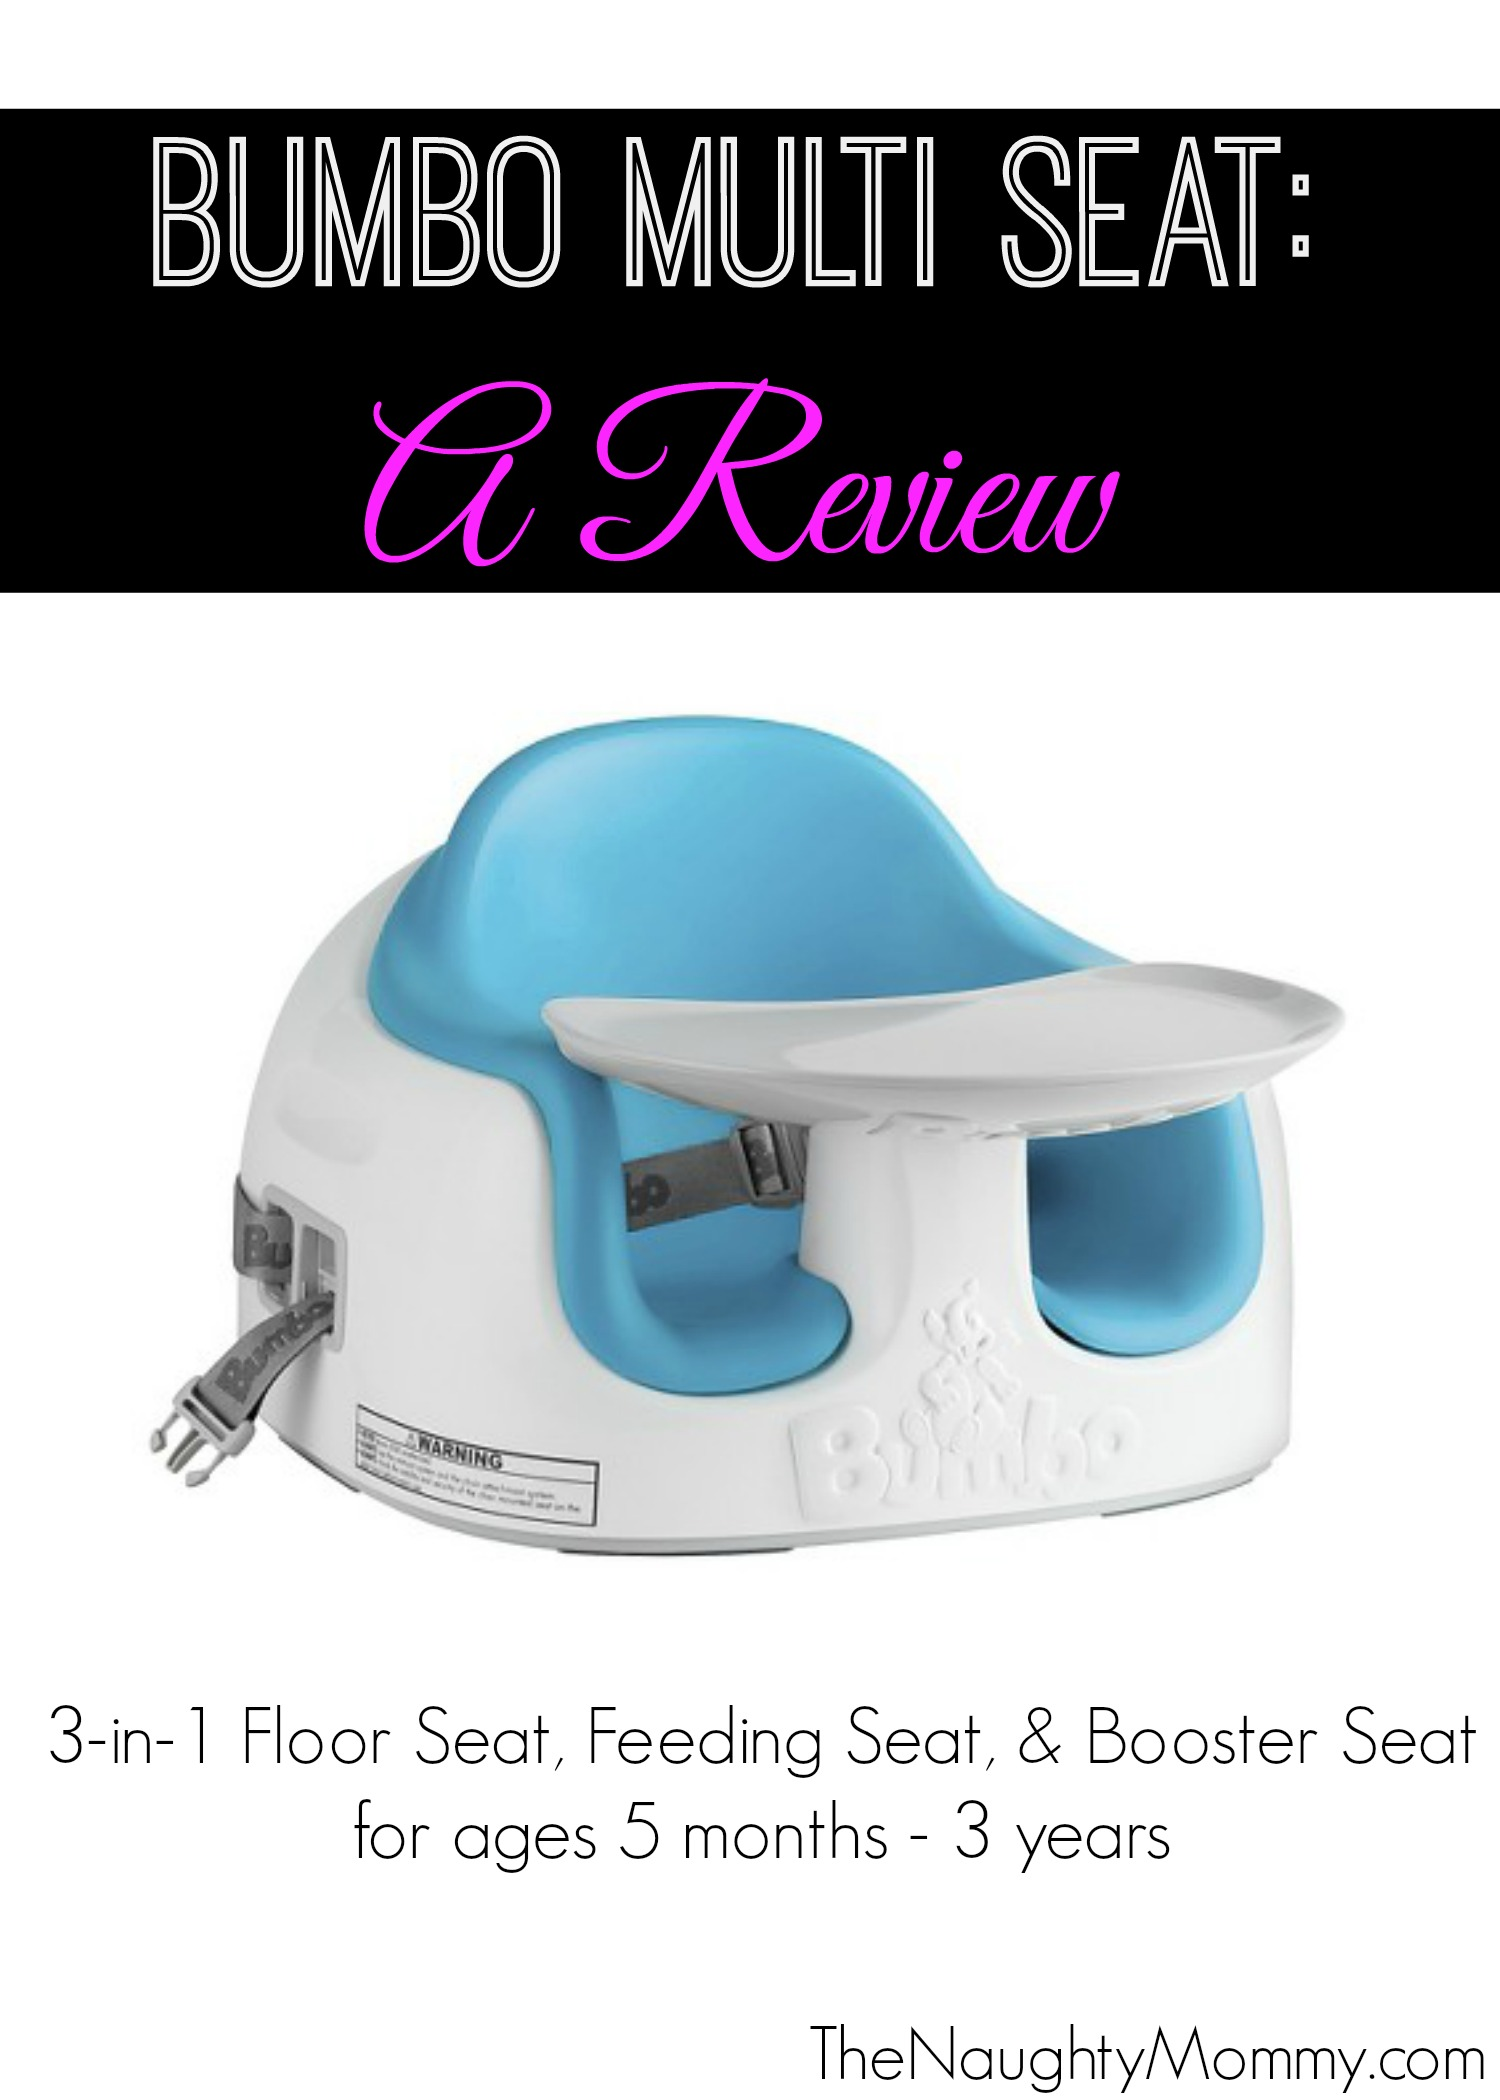 Bumbo Multi Seat Review  The Naughty Mommy